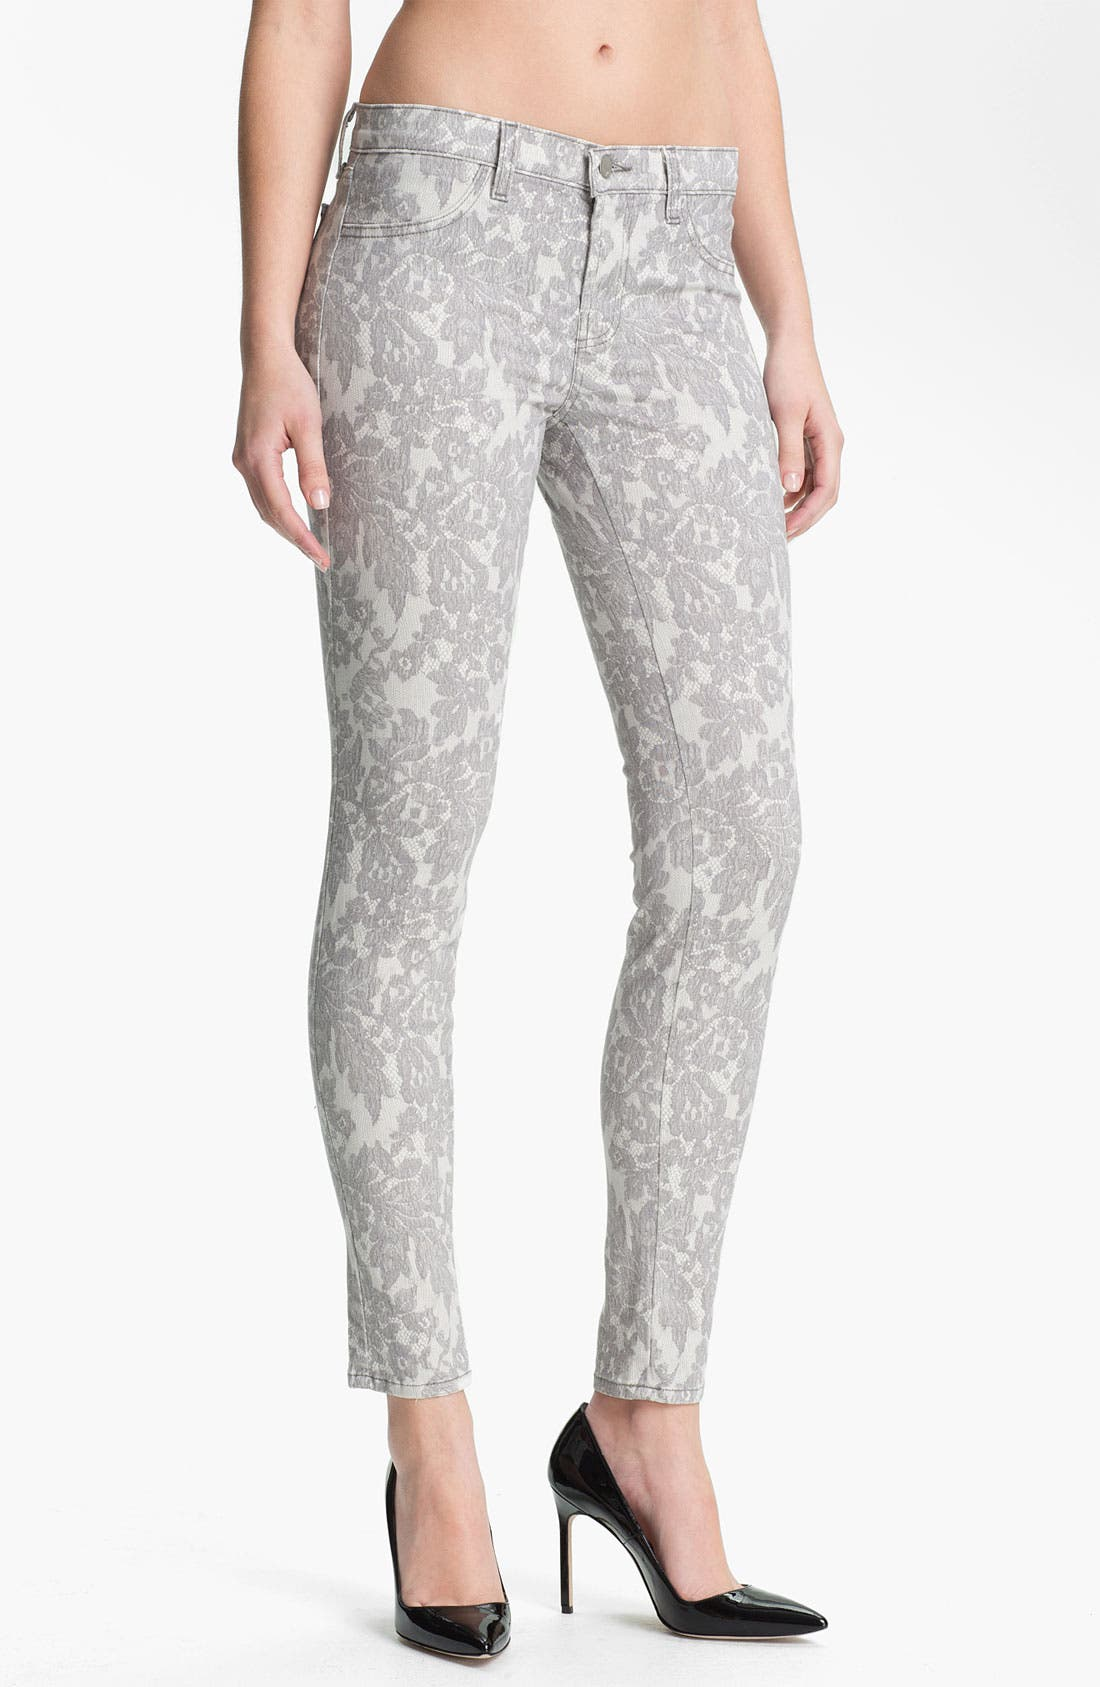 Alternate Image 1 Selected - J Brand Print Skinny Leg Jeans (All Over Lace)